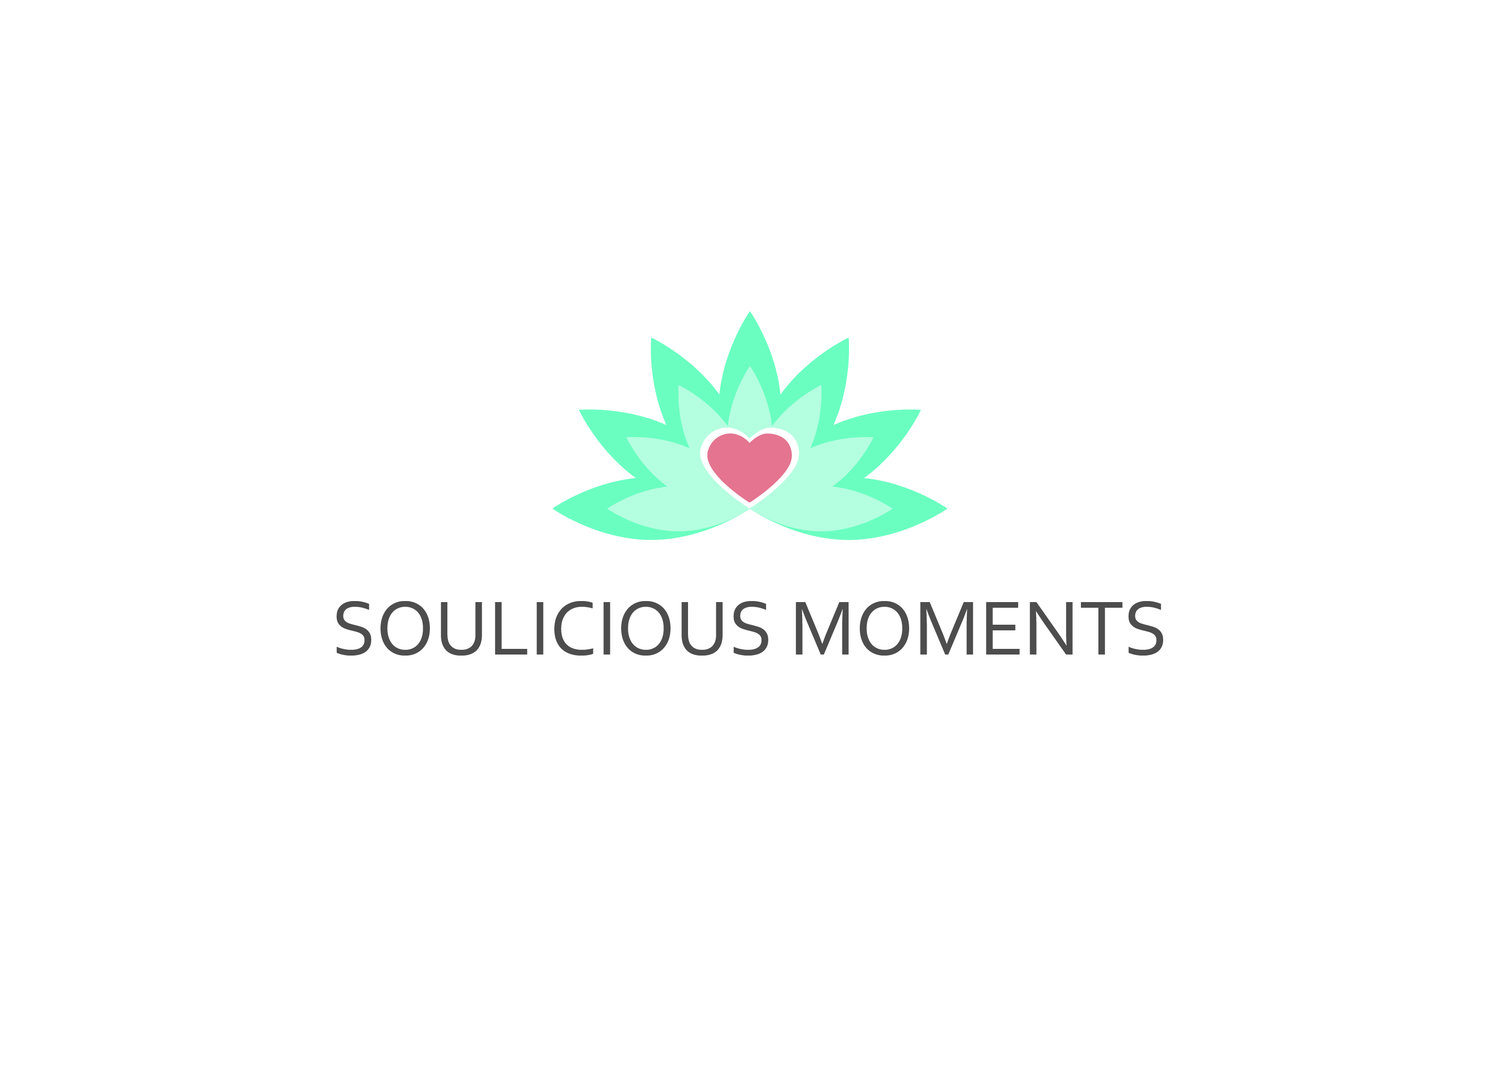 Soulicious moments